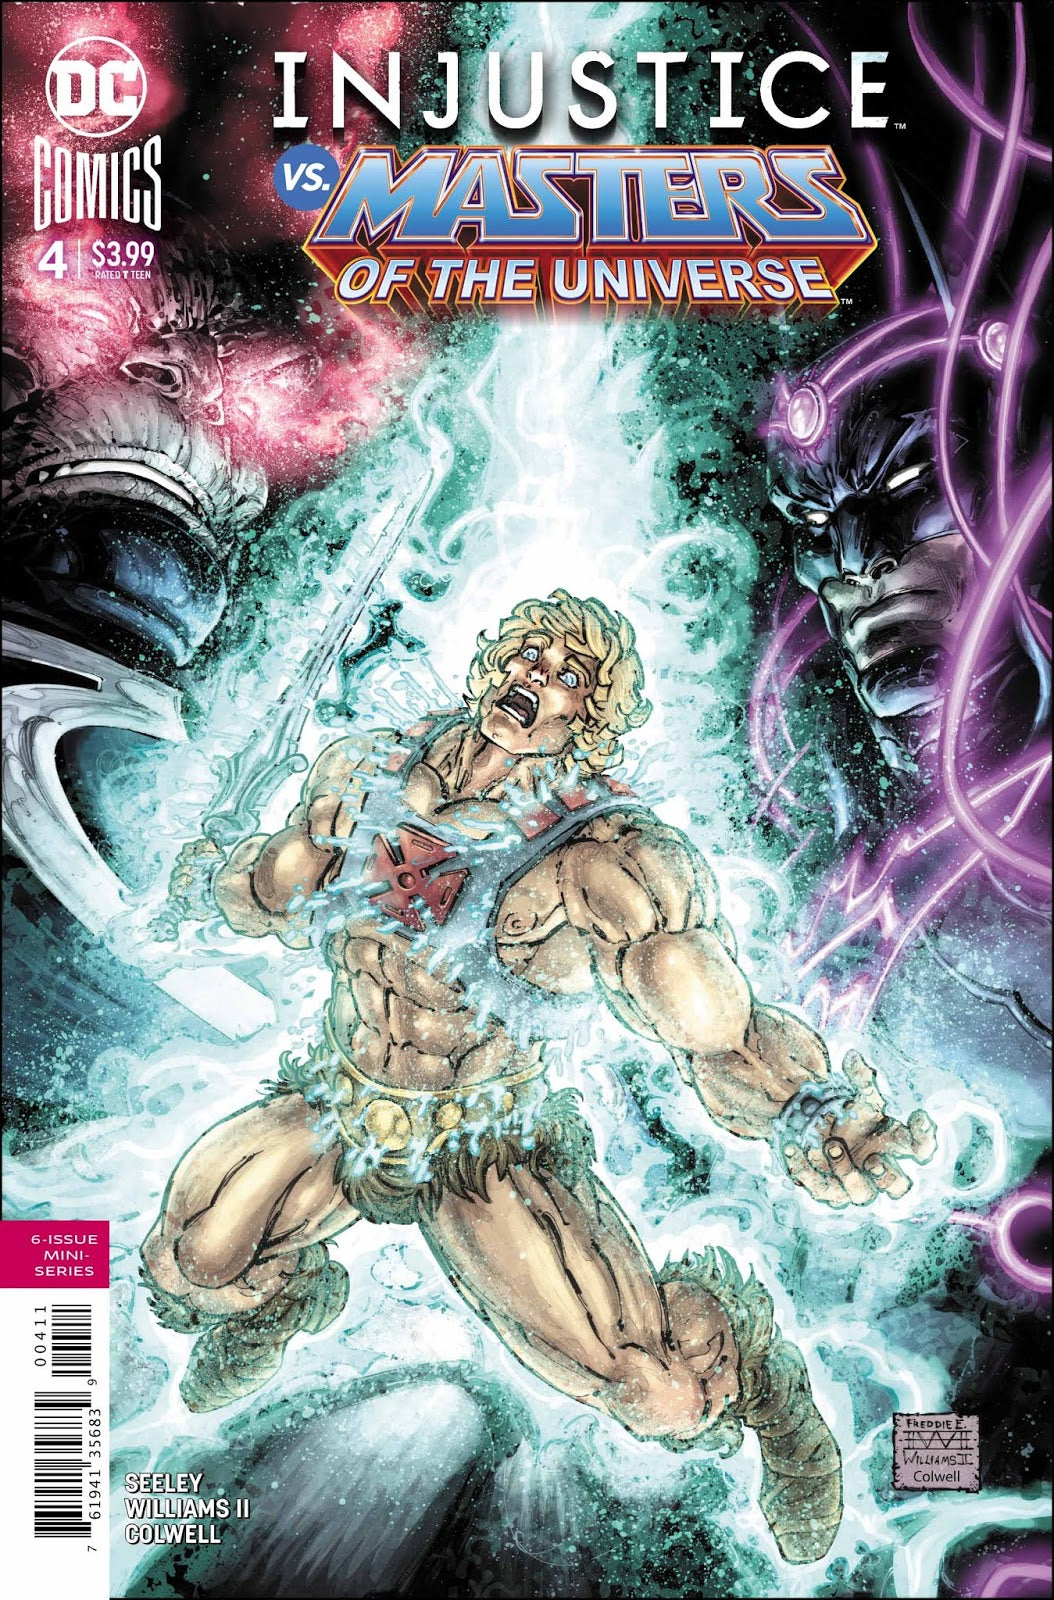 Injustice Vs Masters of the Universe #4 (of 6)